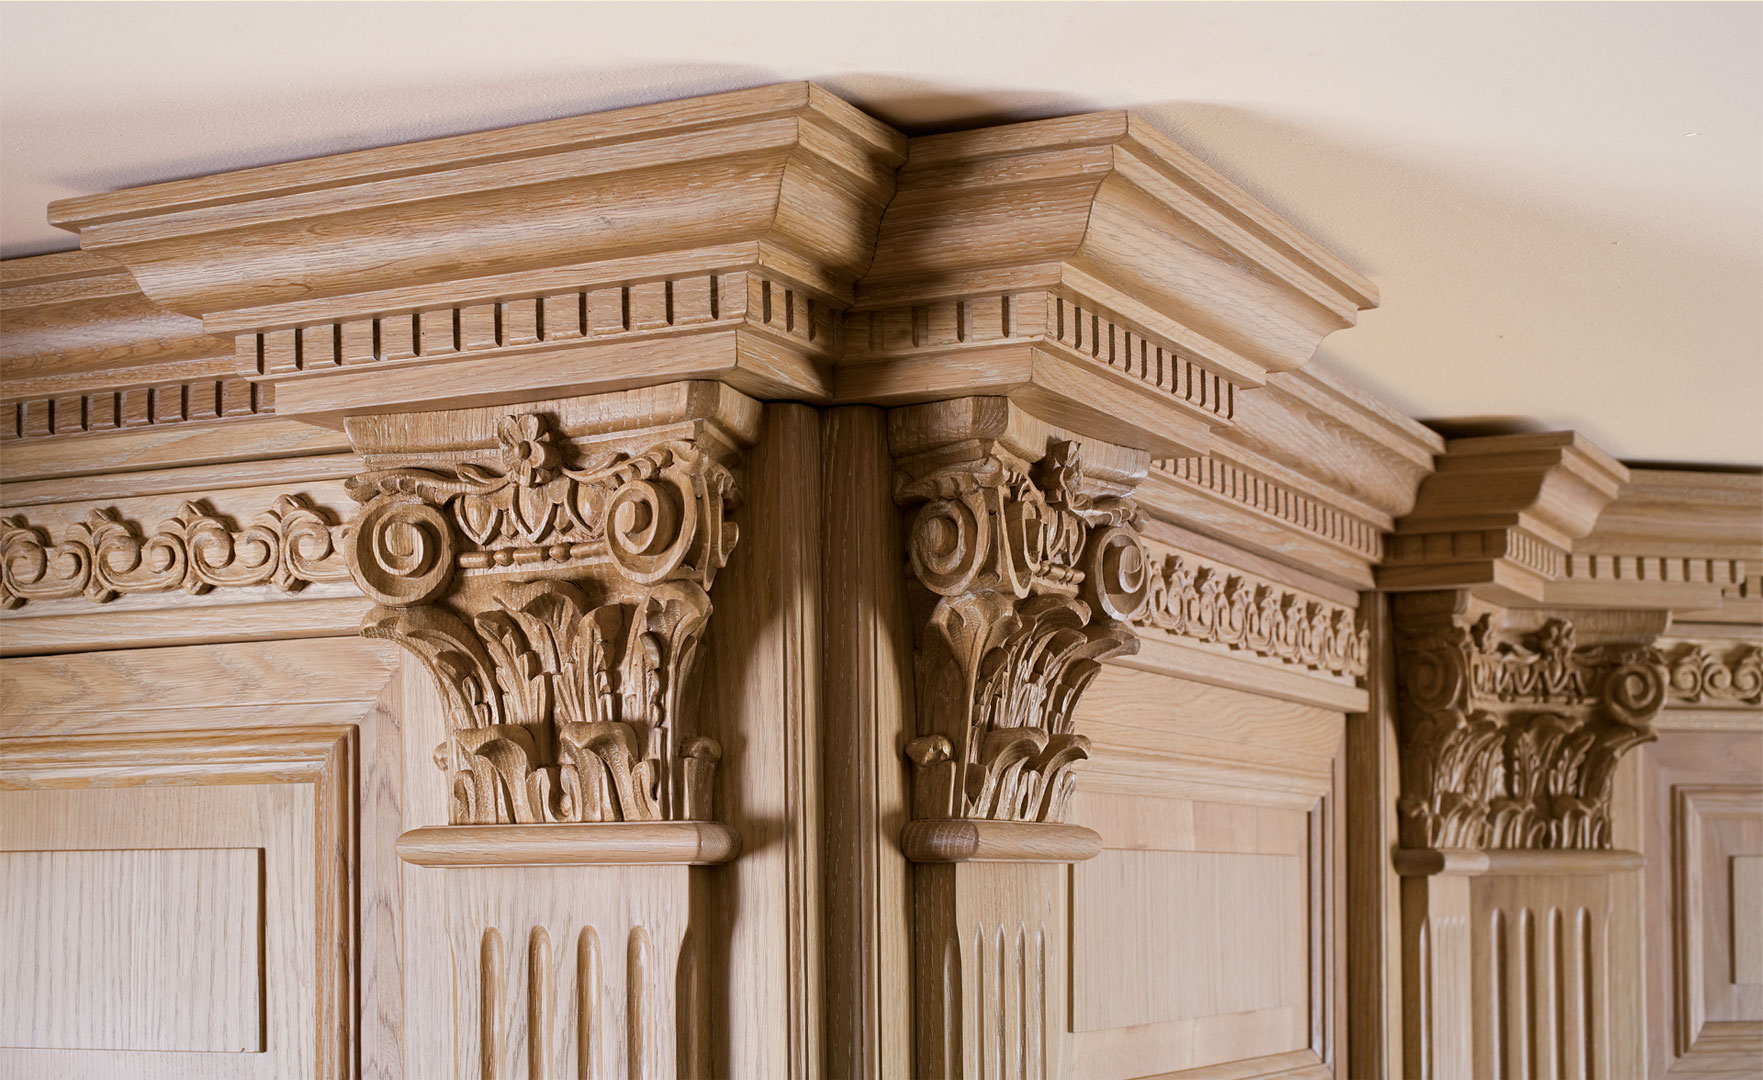 Detail of solid oak hand carved capitals